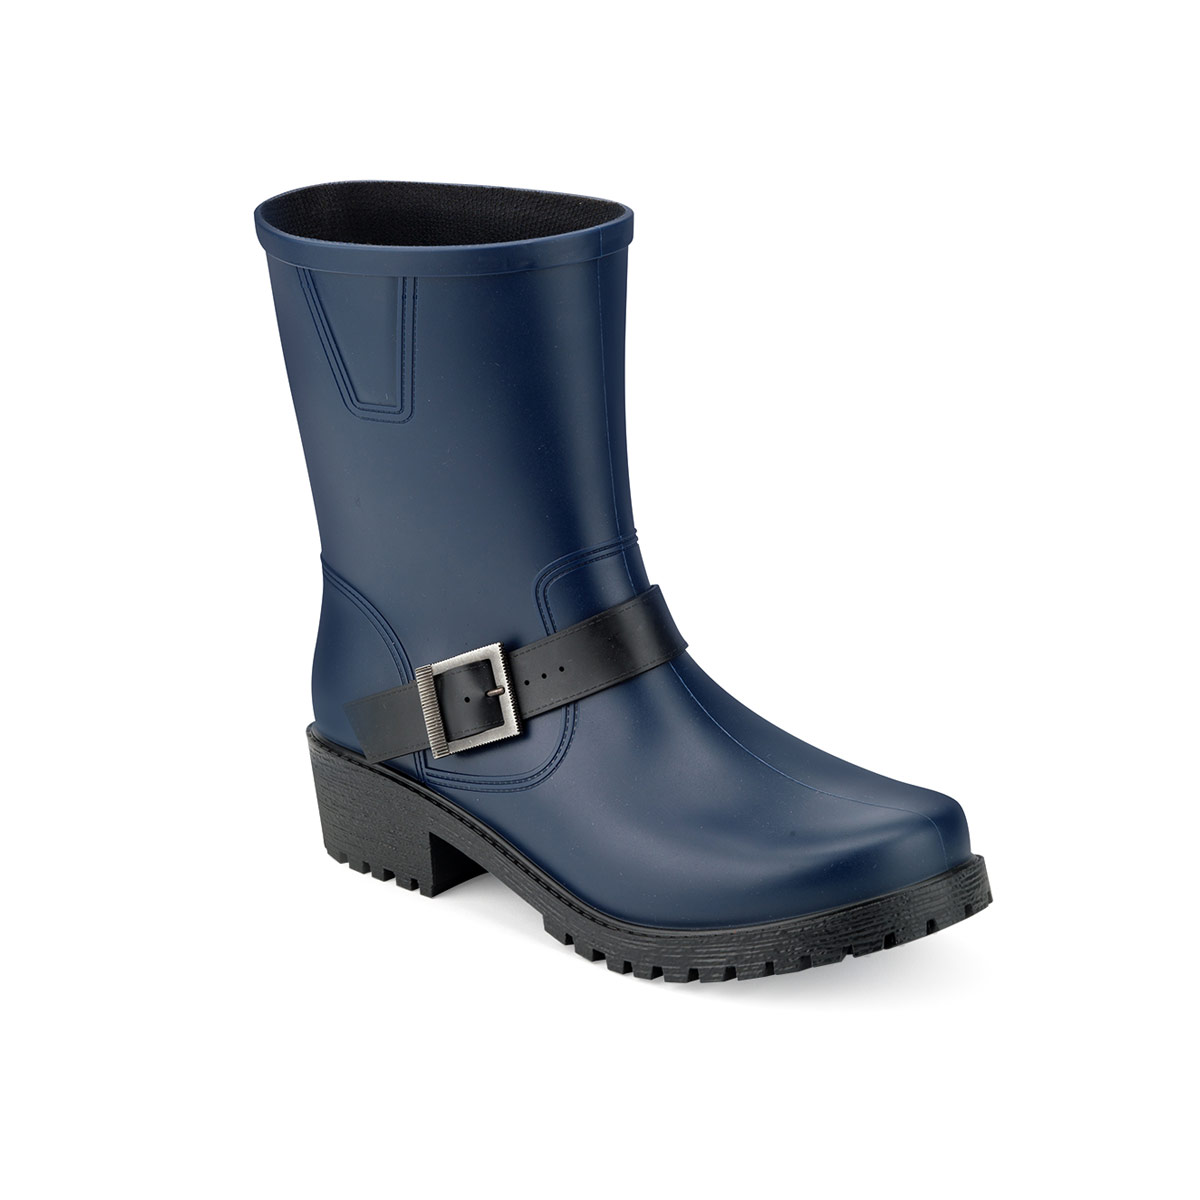 biker boot with an ankle royal 45